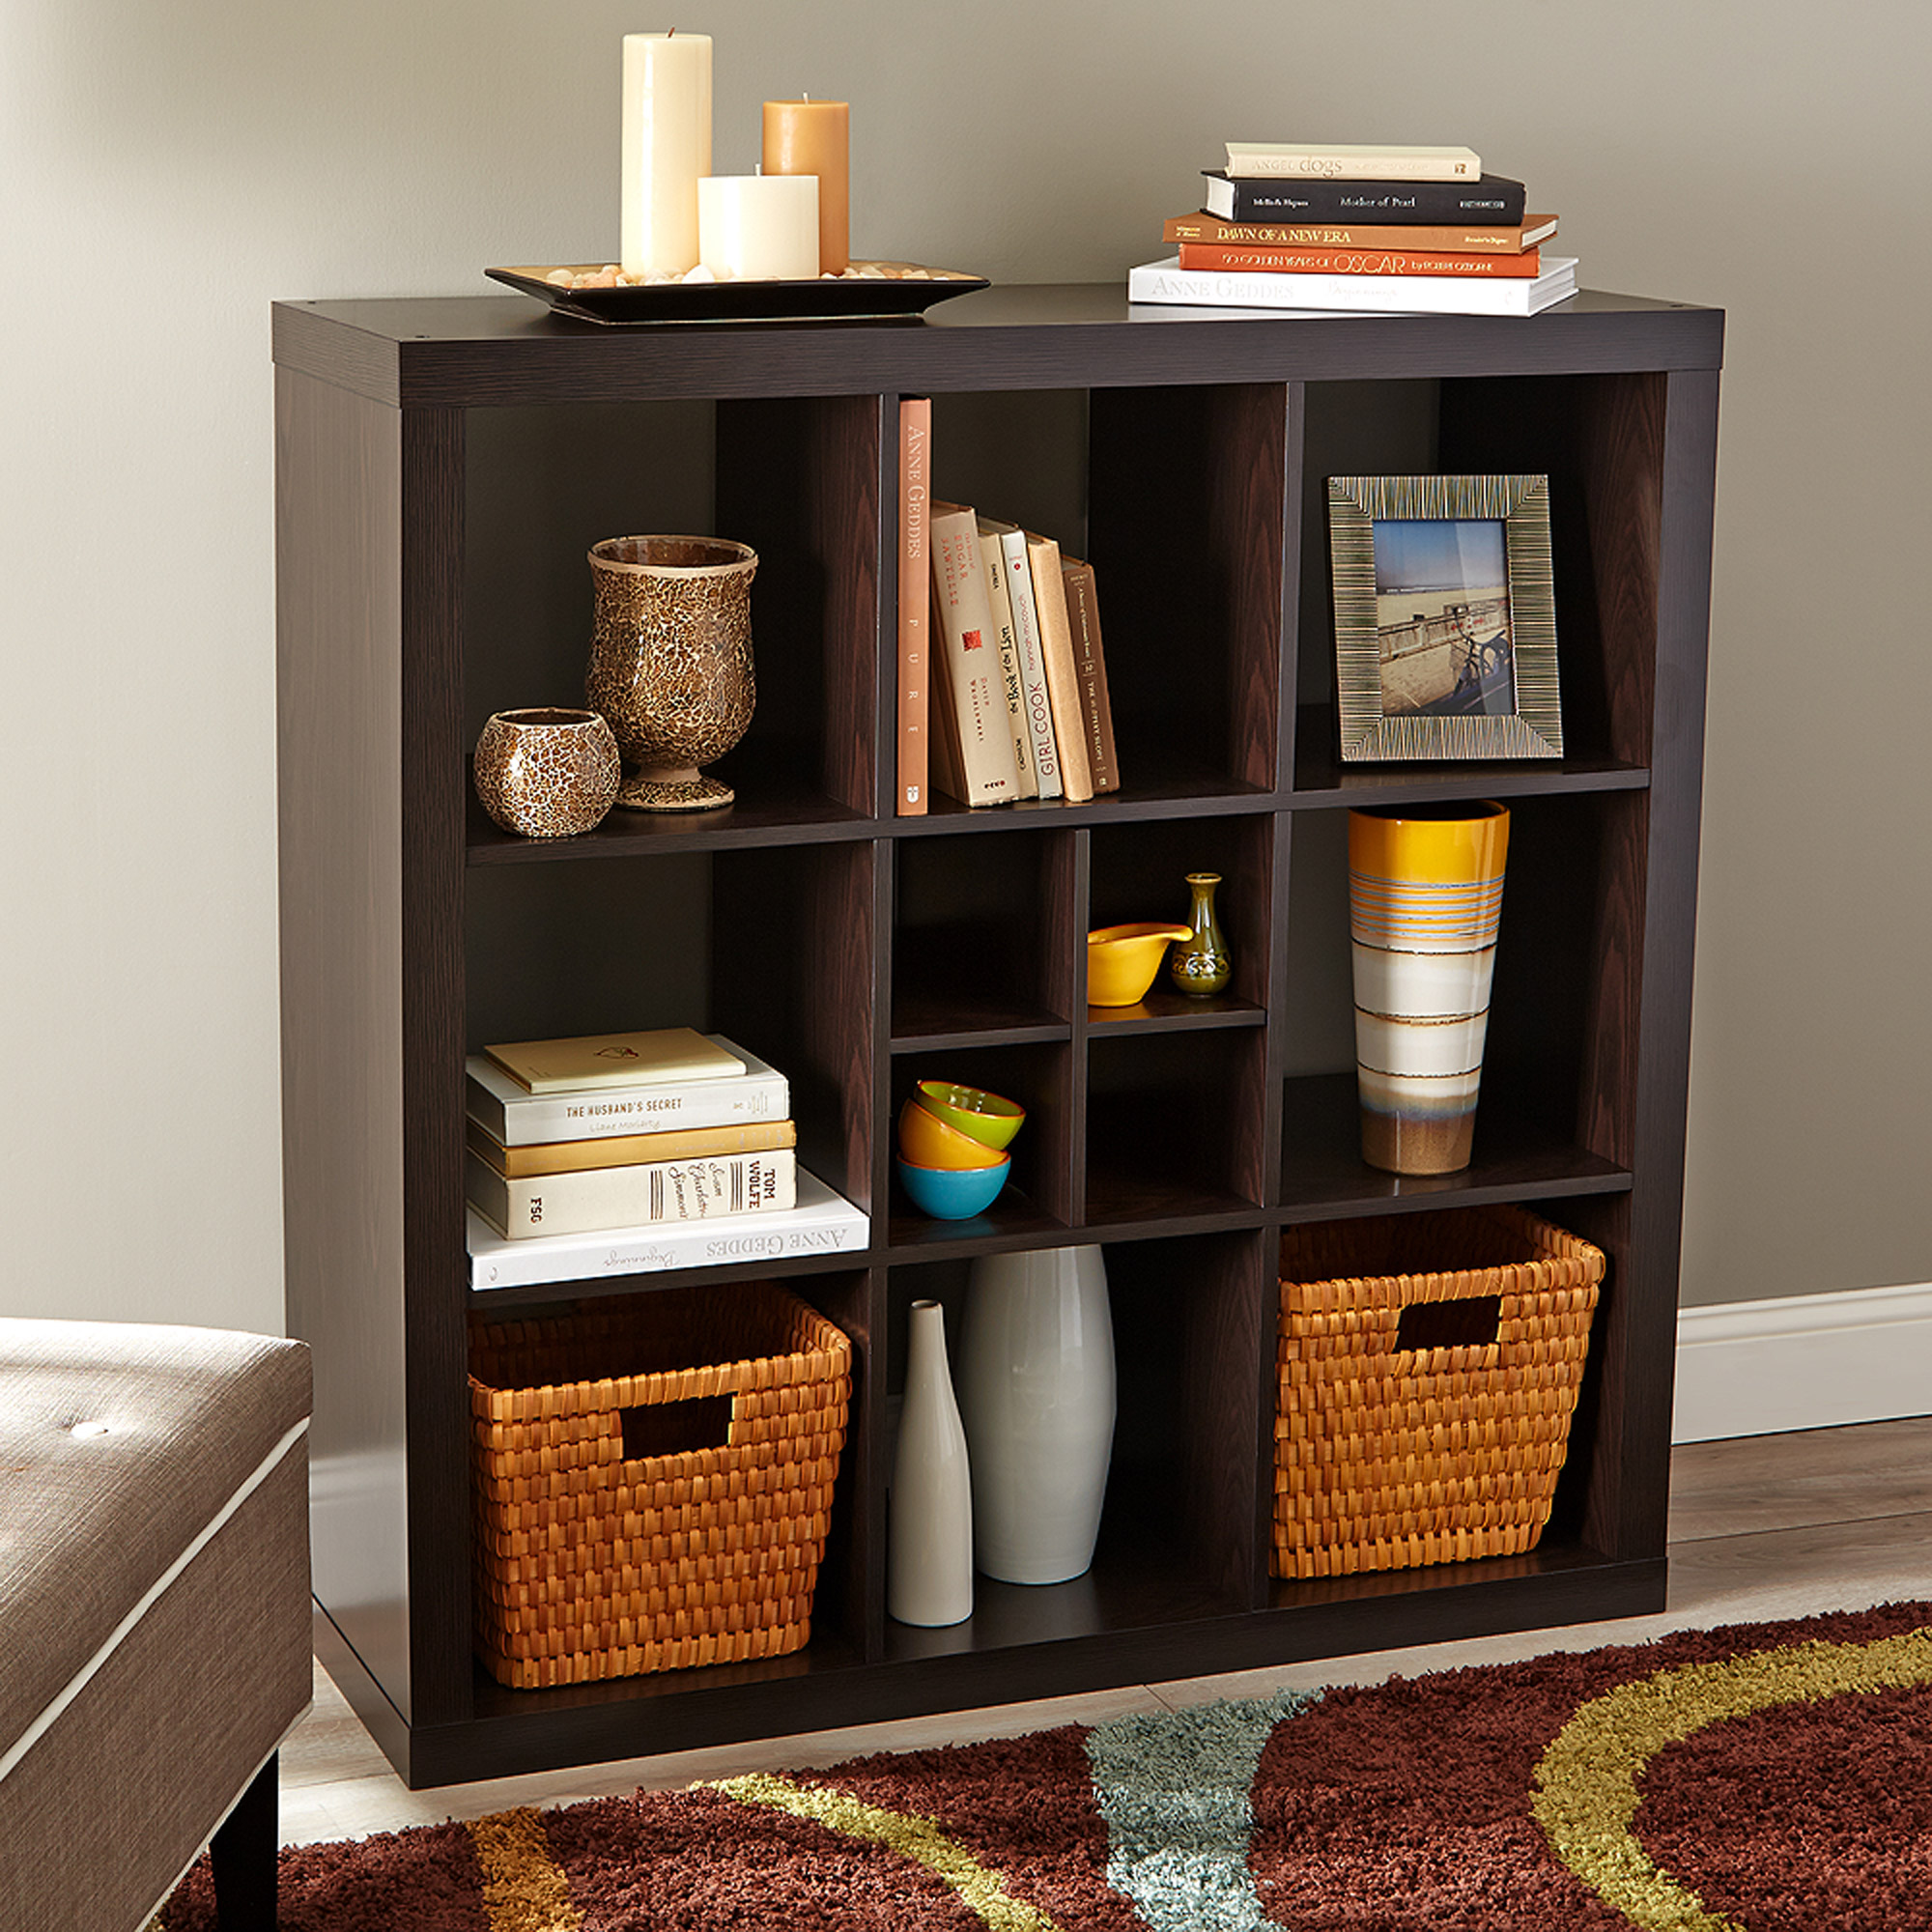 Merveilleux Better Homes And Gardens 9 Cube Storage Multiple